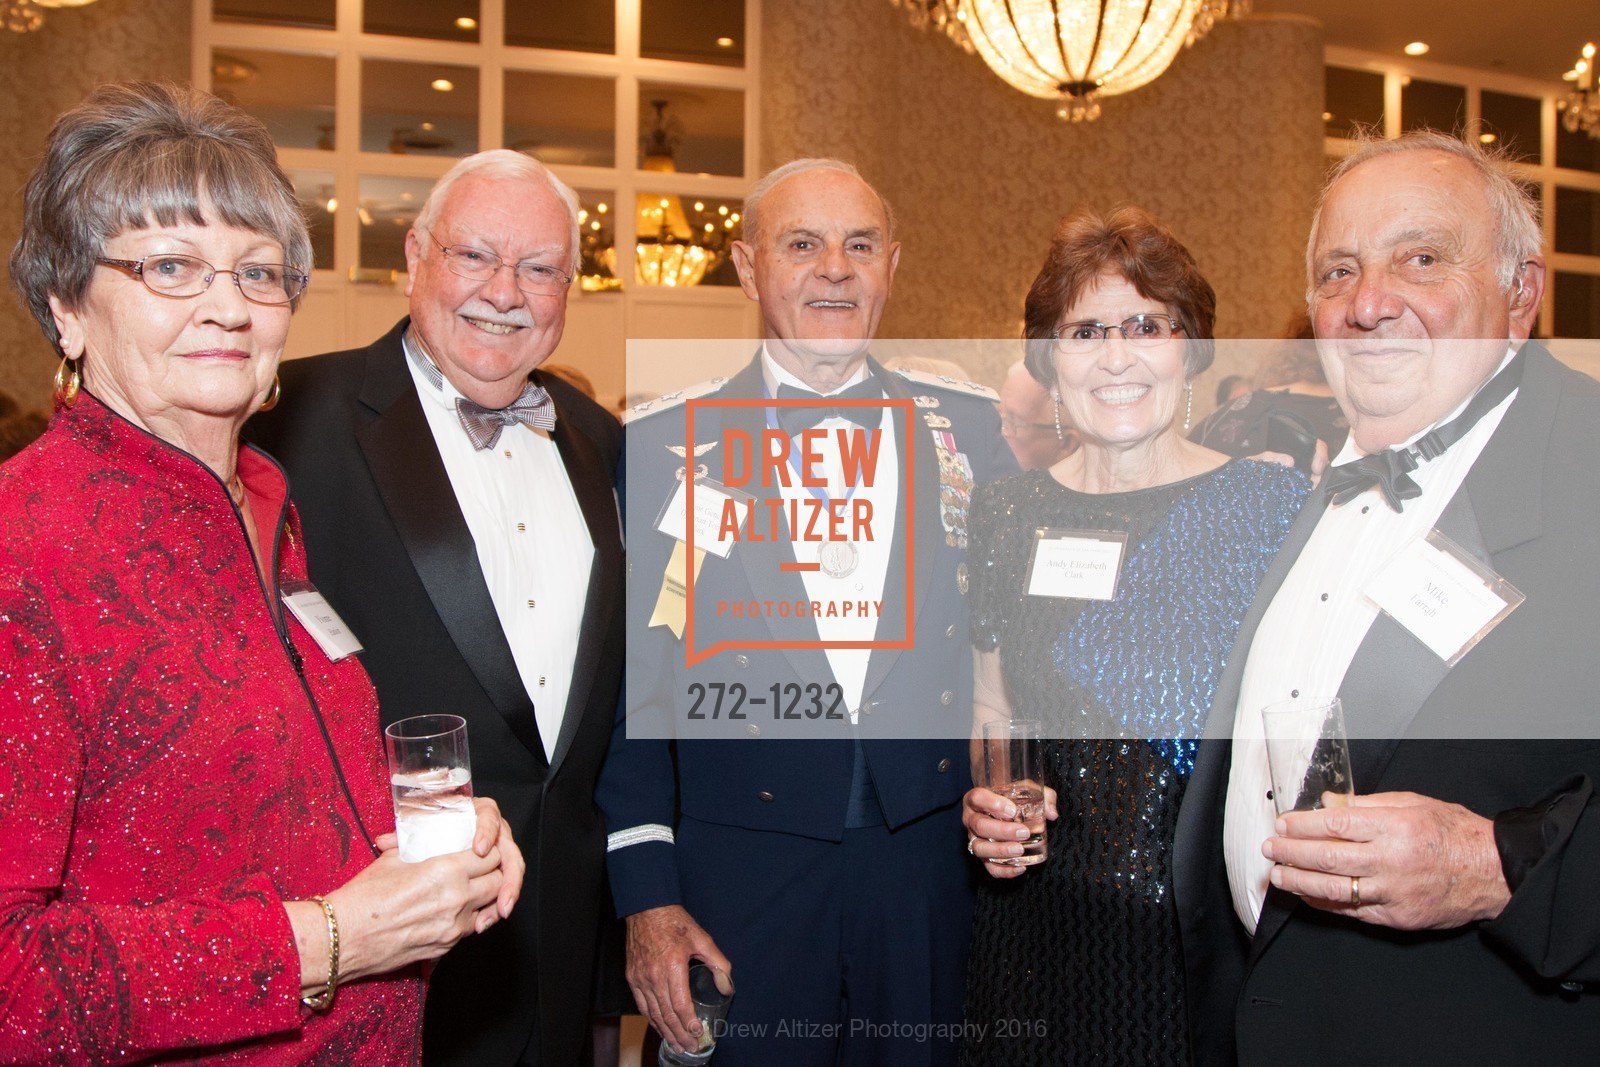 Yvonne Hanlon, Mike Hanlon, Major General Drennan Tony Clark, Elizabeth Clark, Mike Farrah, Photo #272-1232